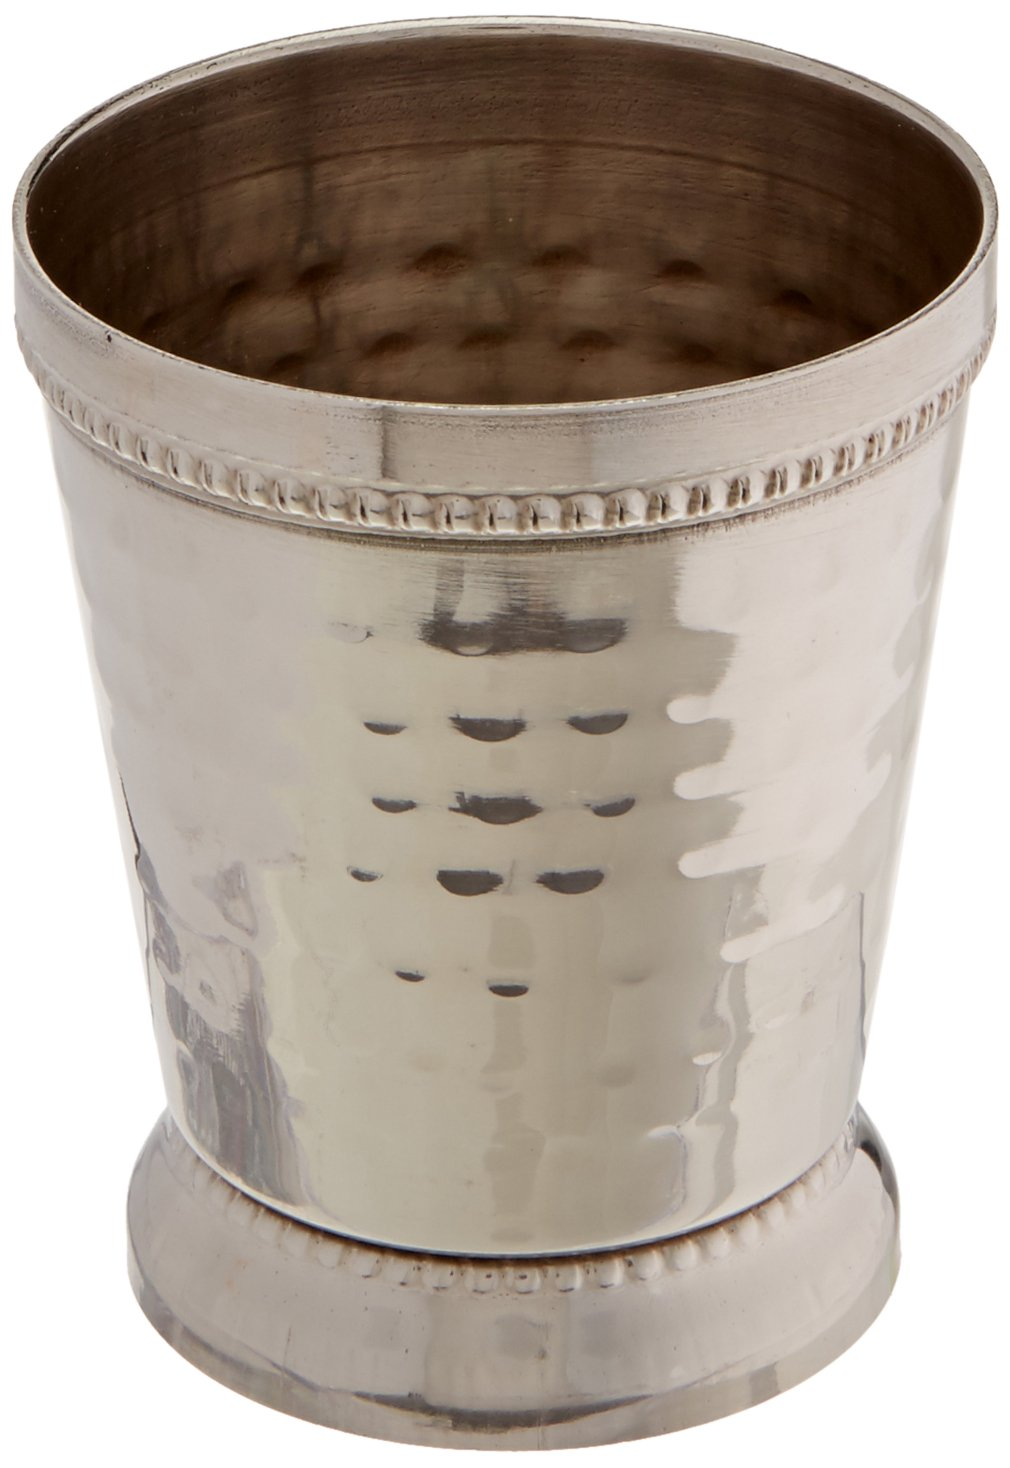 Elegance 4 oz Hammered Mint Julep Cup, Small, Silver 72476